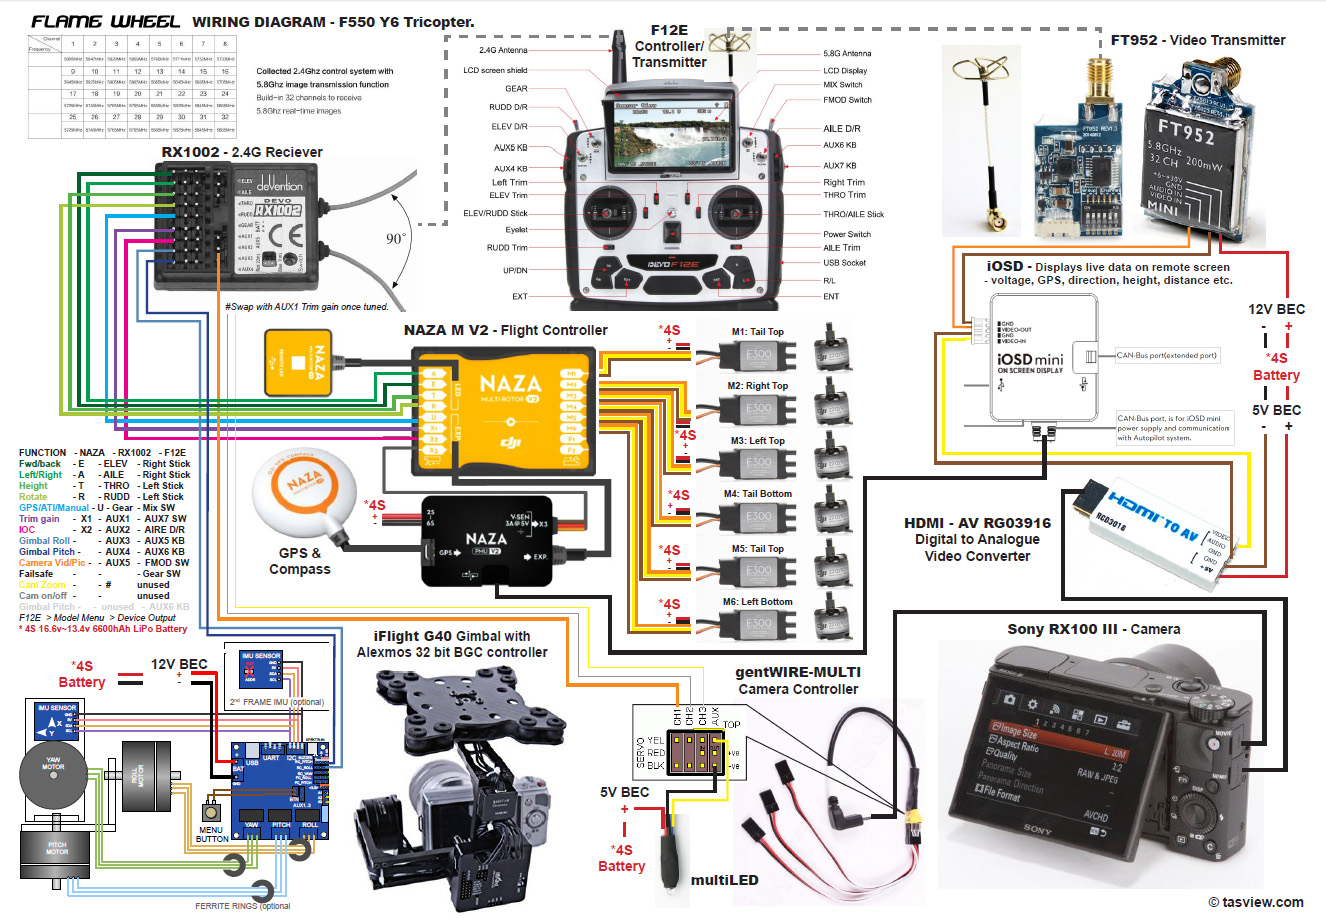 Fascinating mack mp7 wiring diagrams photos best image wire astonishing mack wiring schematic images best image wire binvm asfbconference2016 Images